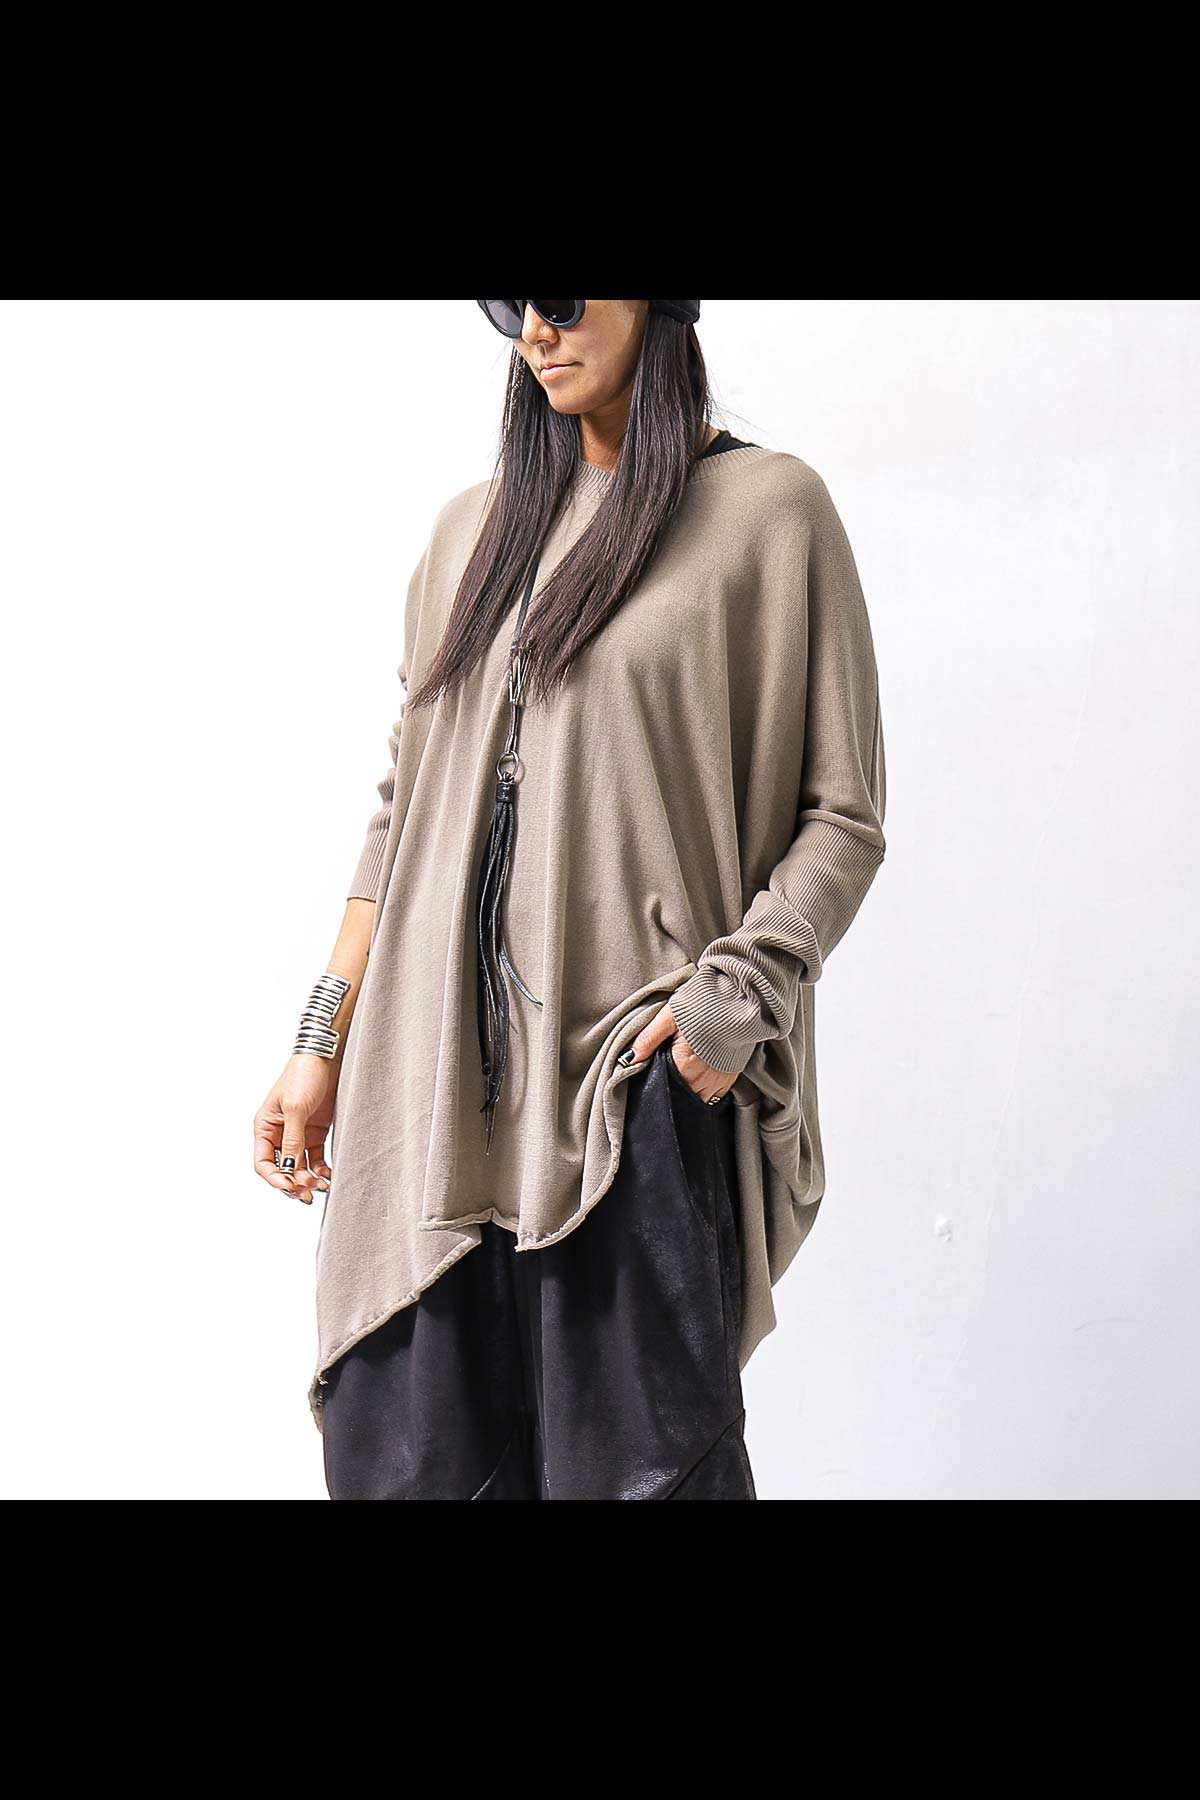 <img class='new_mark_img1' src='https://img.shop-pro.jp/img/new/icons8.gif' style='border:none;display:inline;margin:0px;padding:0px;width:auto;' />UNISEX OVERSIZED COCOON LONG TOPS VB1169/QM_DEEP BEIGE